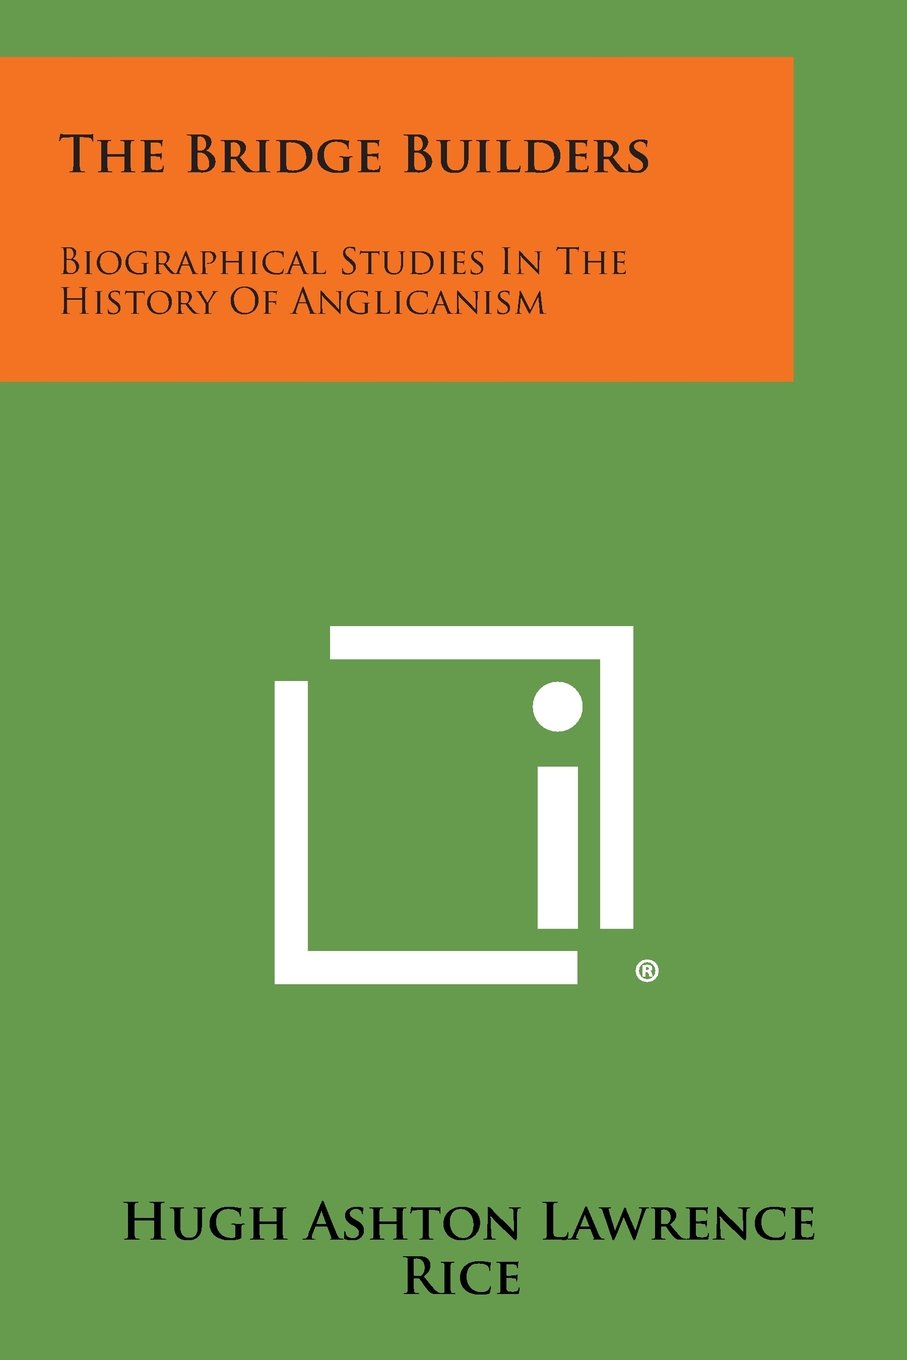 Download The Bridge Builders: Biographical Studies in the History of Anglicanism pdf